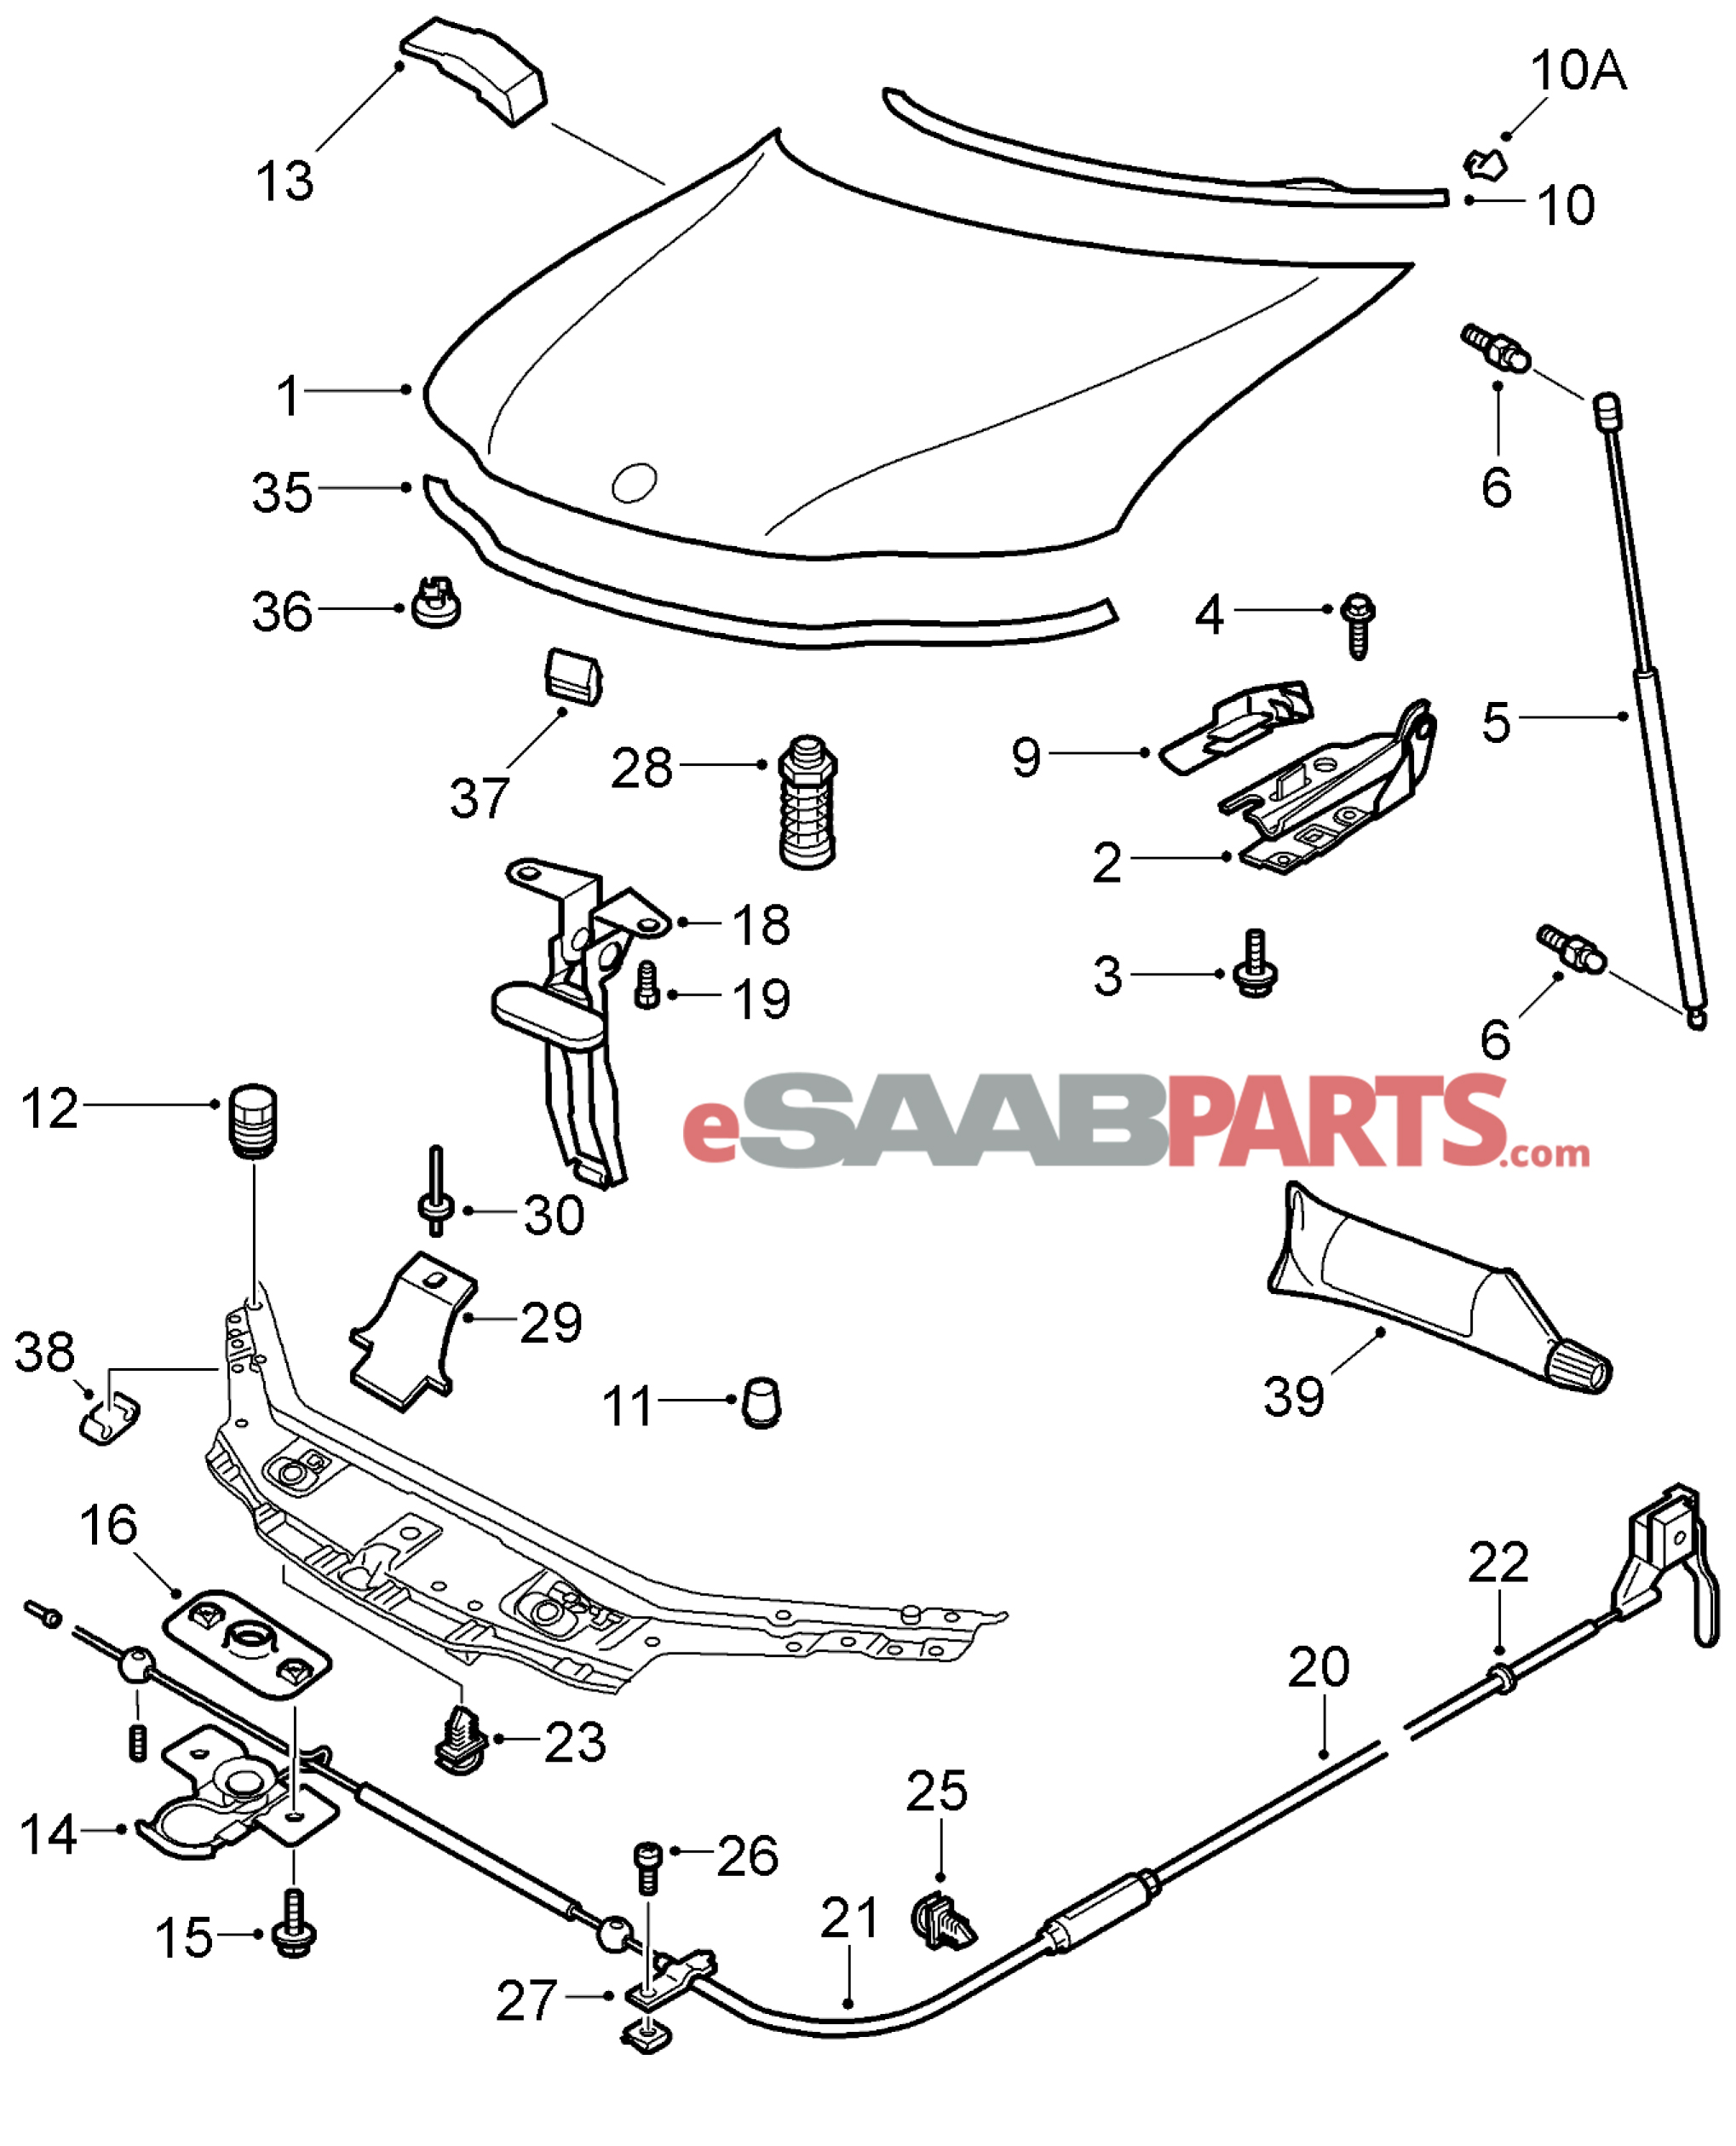 2005 Saab 9 2x Fuse Box Wheel Saab 9-2X Wiring Diagram